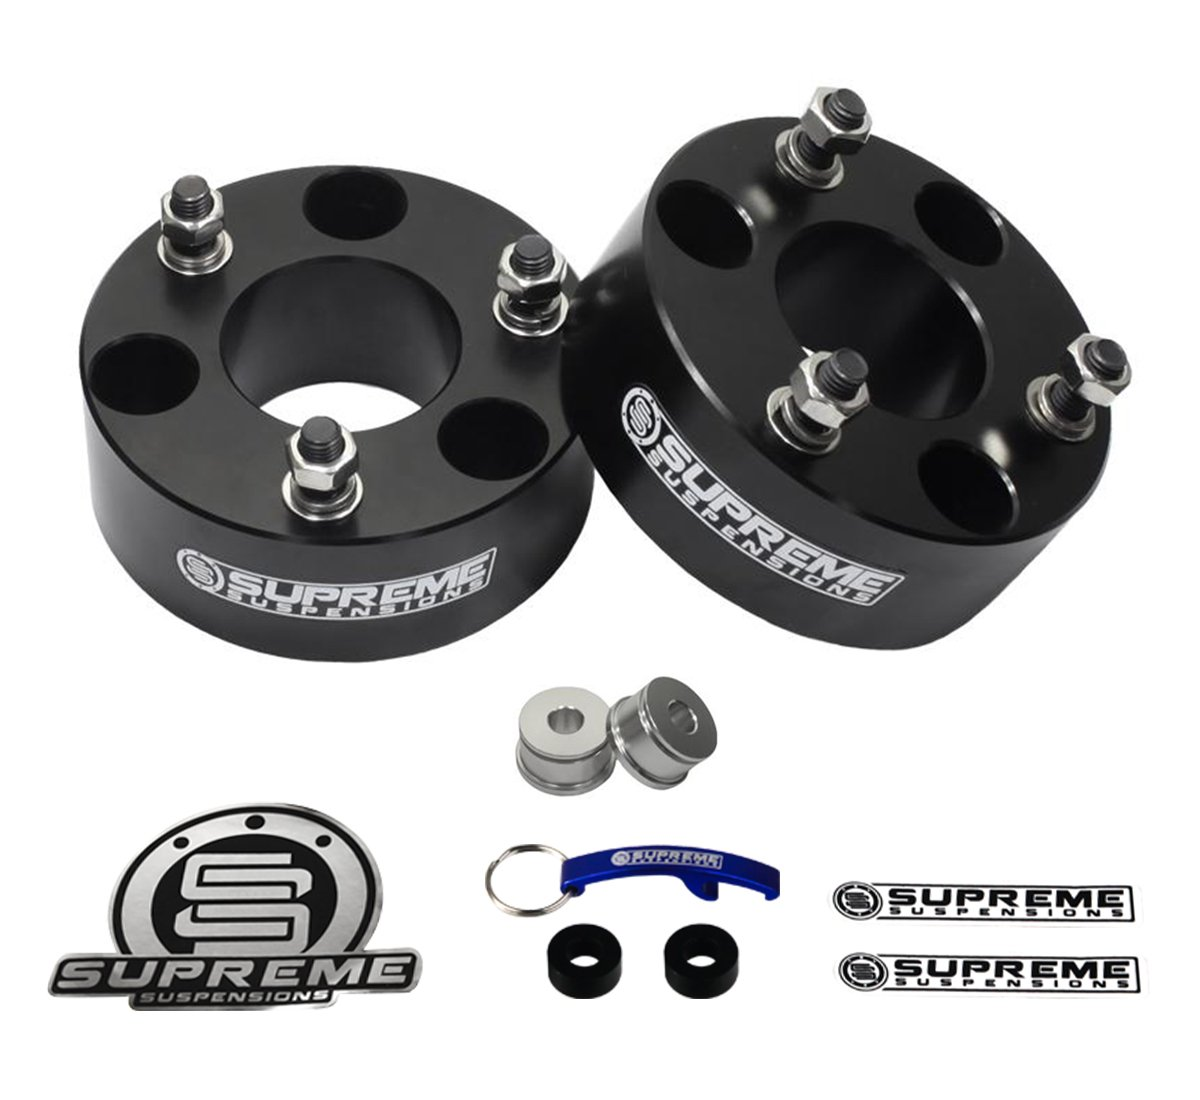 Amazon Com Supreme Suspensions Ford Expedition Lift Kit   Front Suspension Lift Cnc Machined T Aircraft Billet Expedition Leveling Kit Black Pro